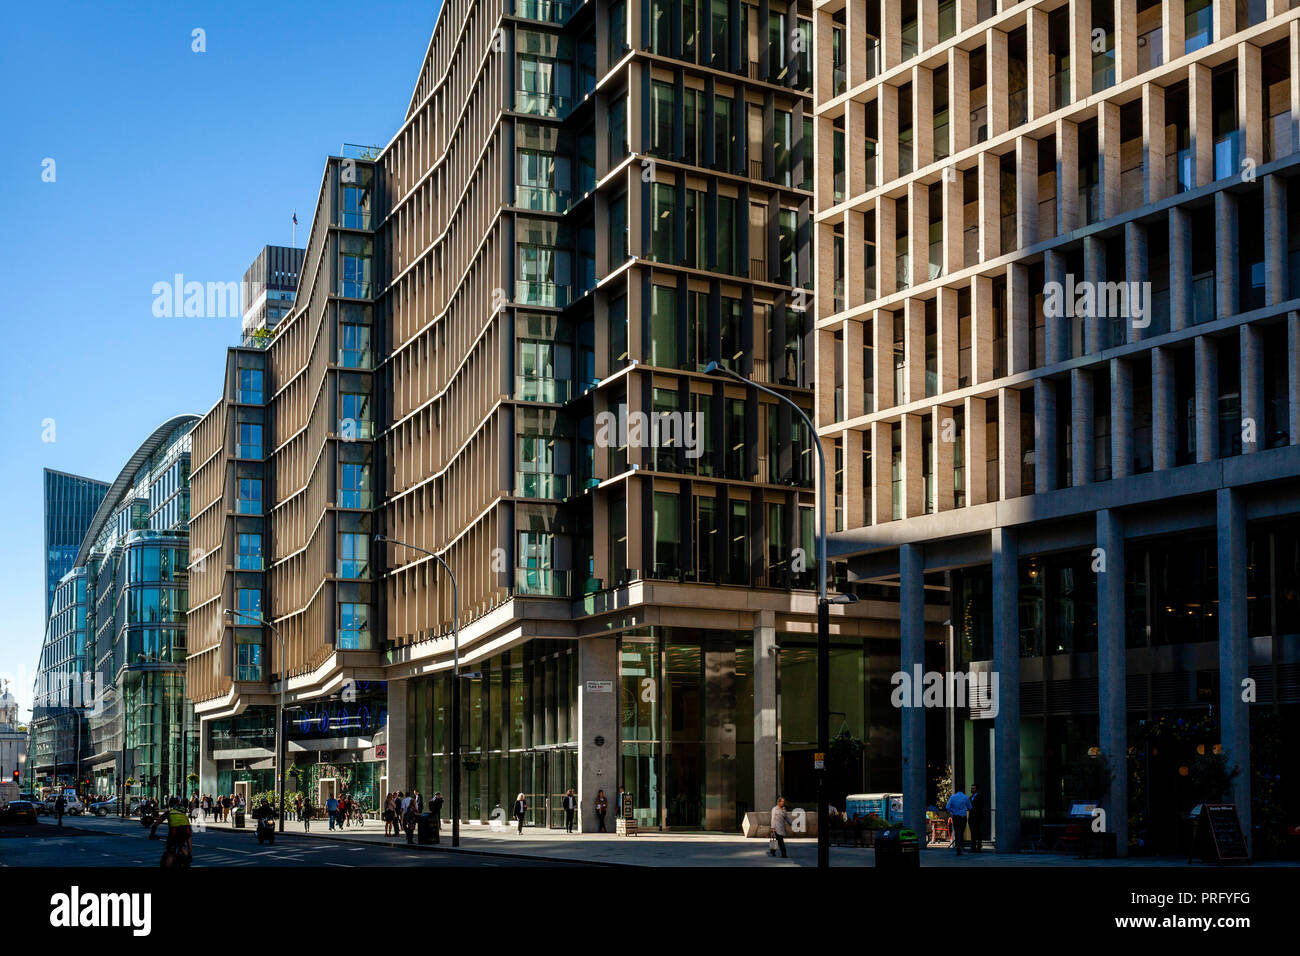 Buildings In Victoria Street, London, UK - Stock Image